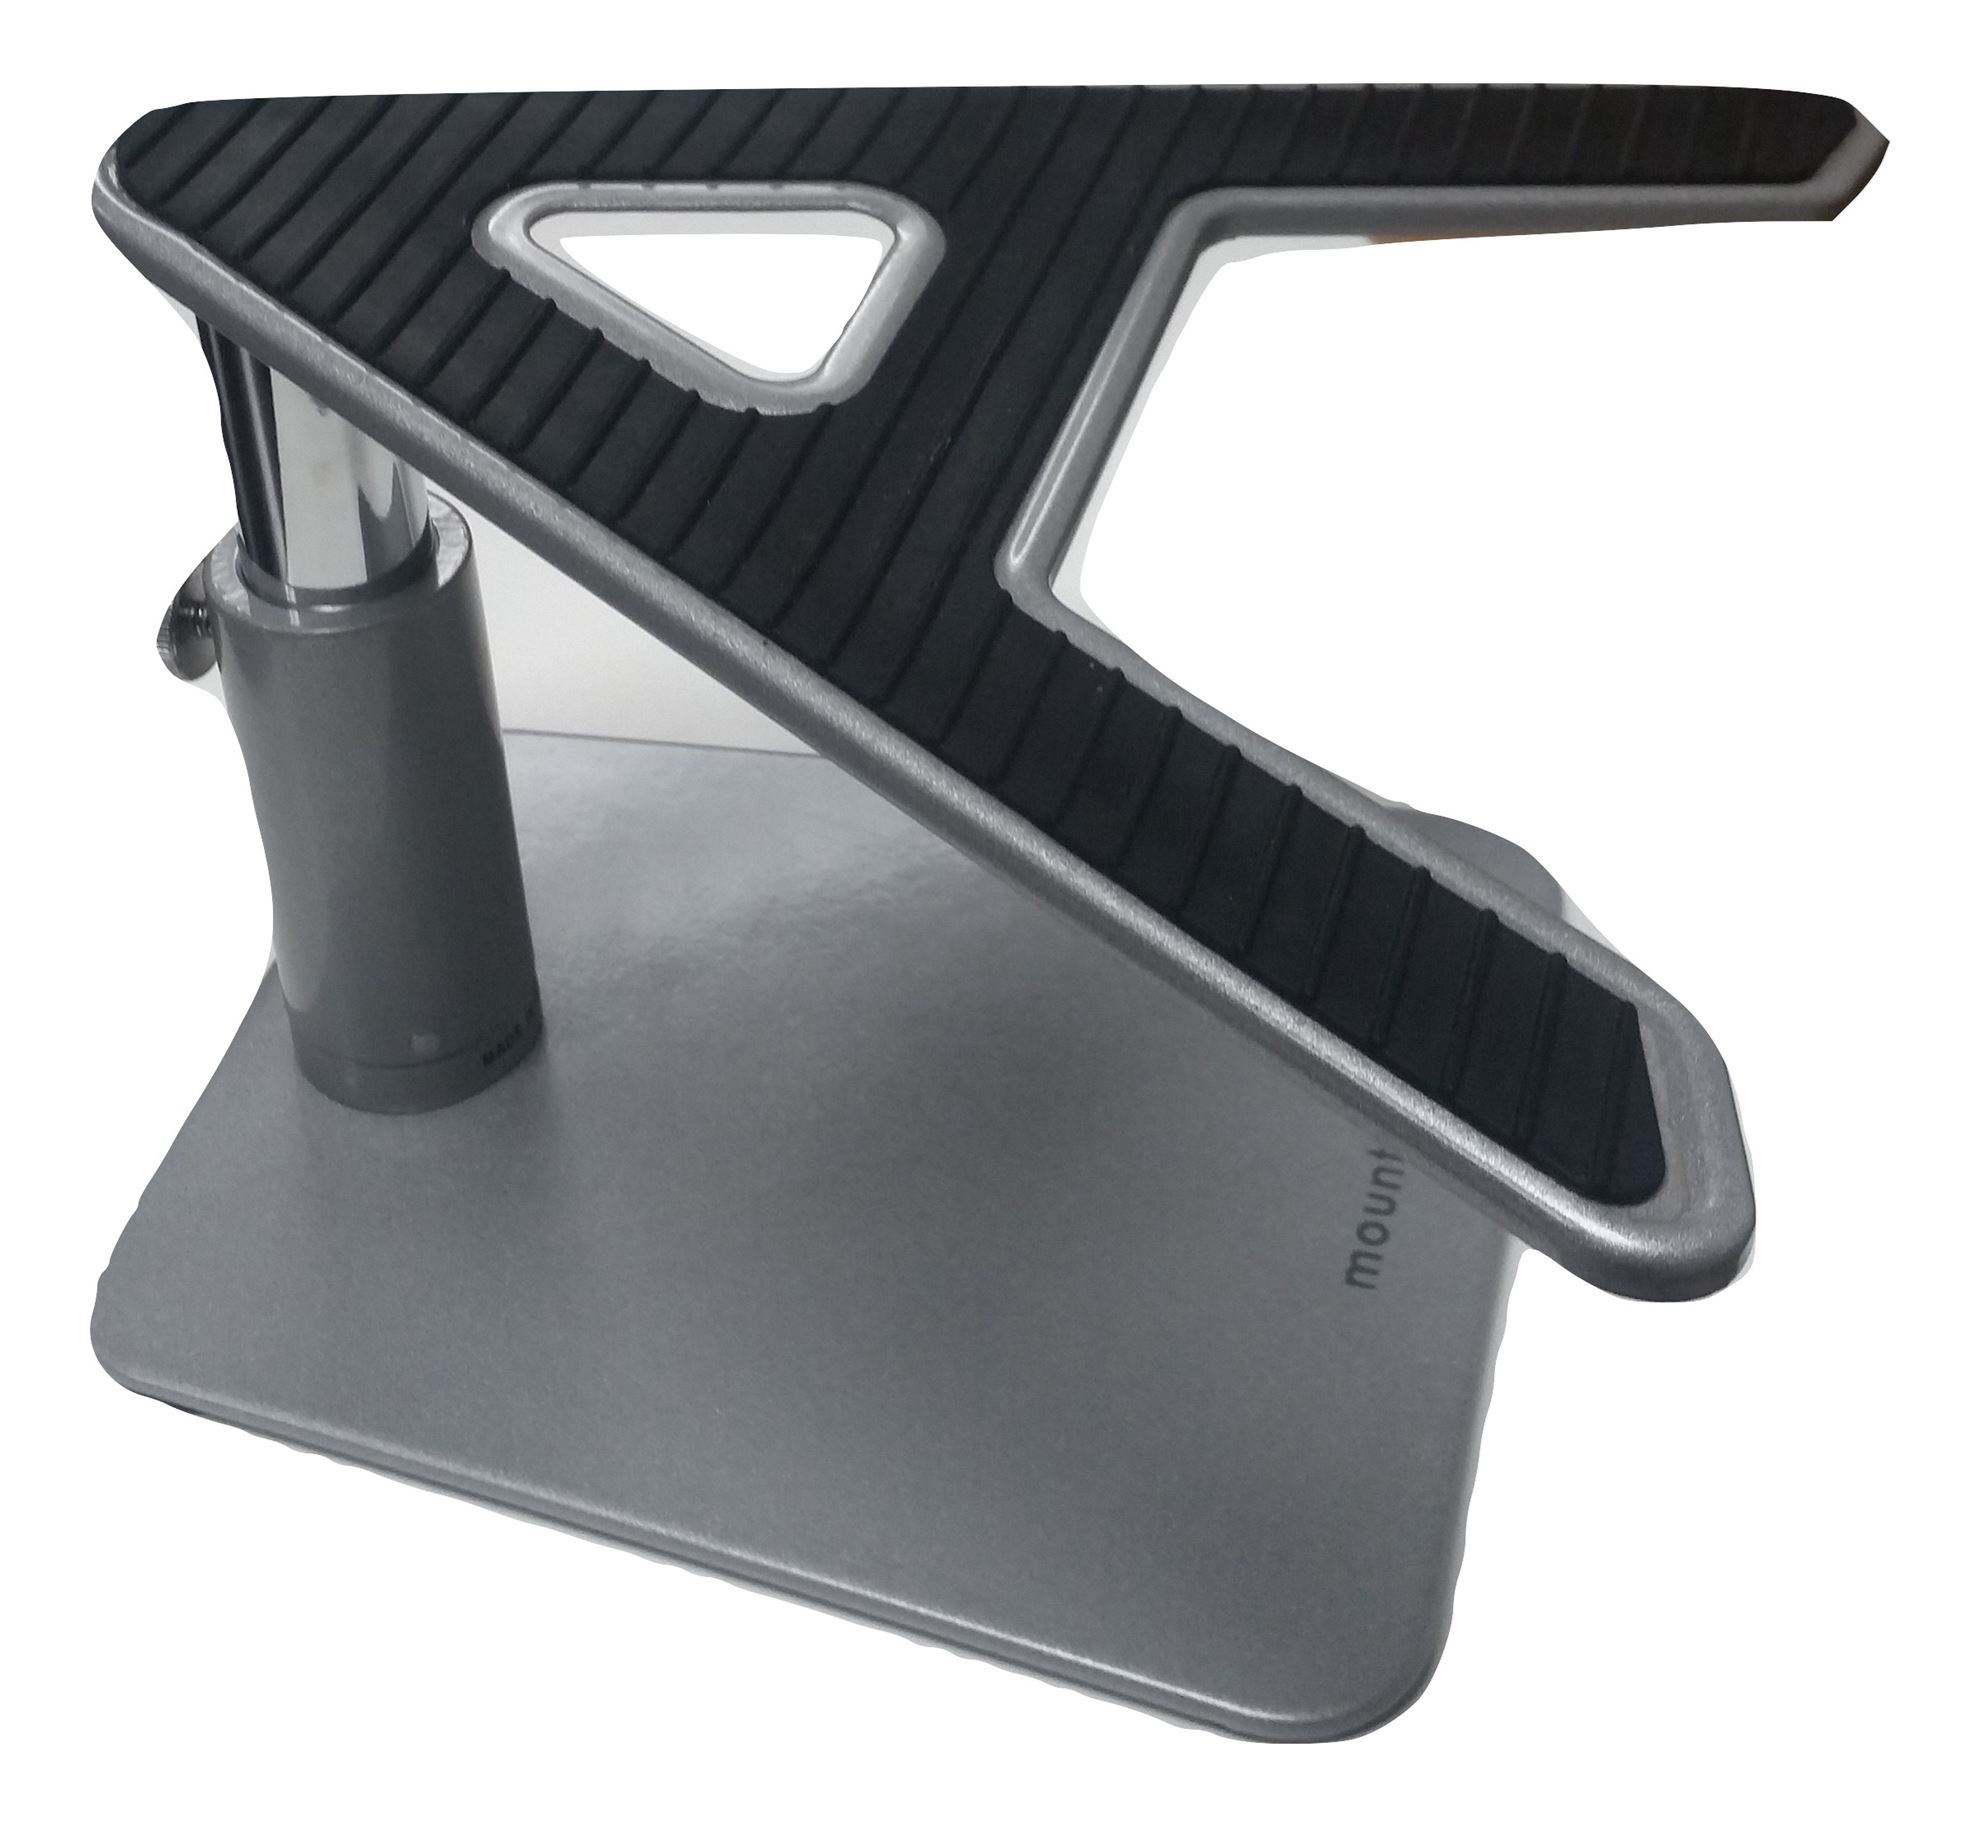 Mount-it Adjustable Laptop Stand